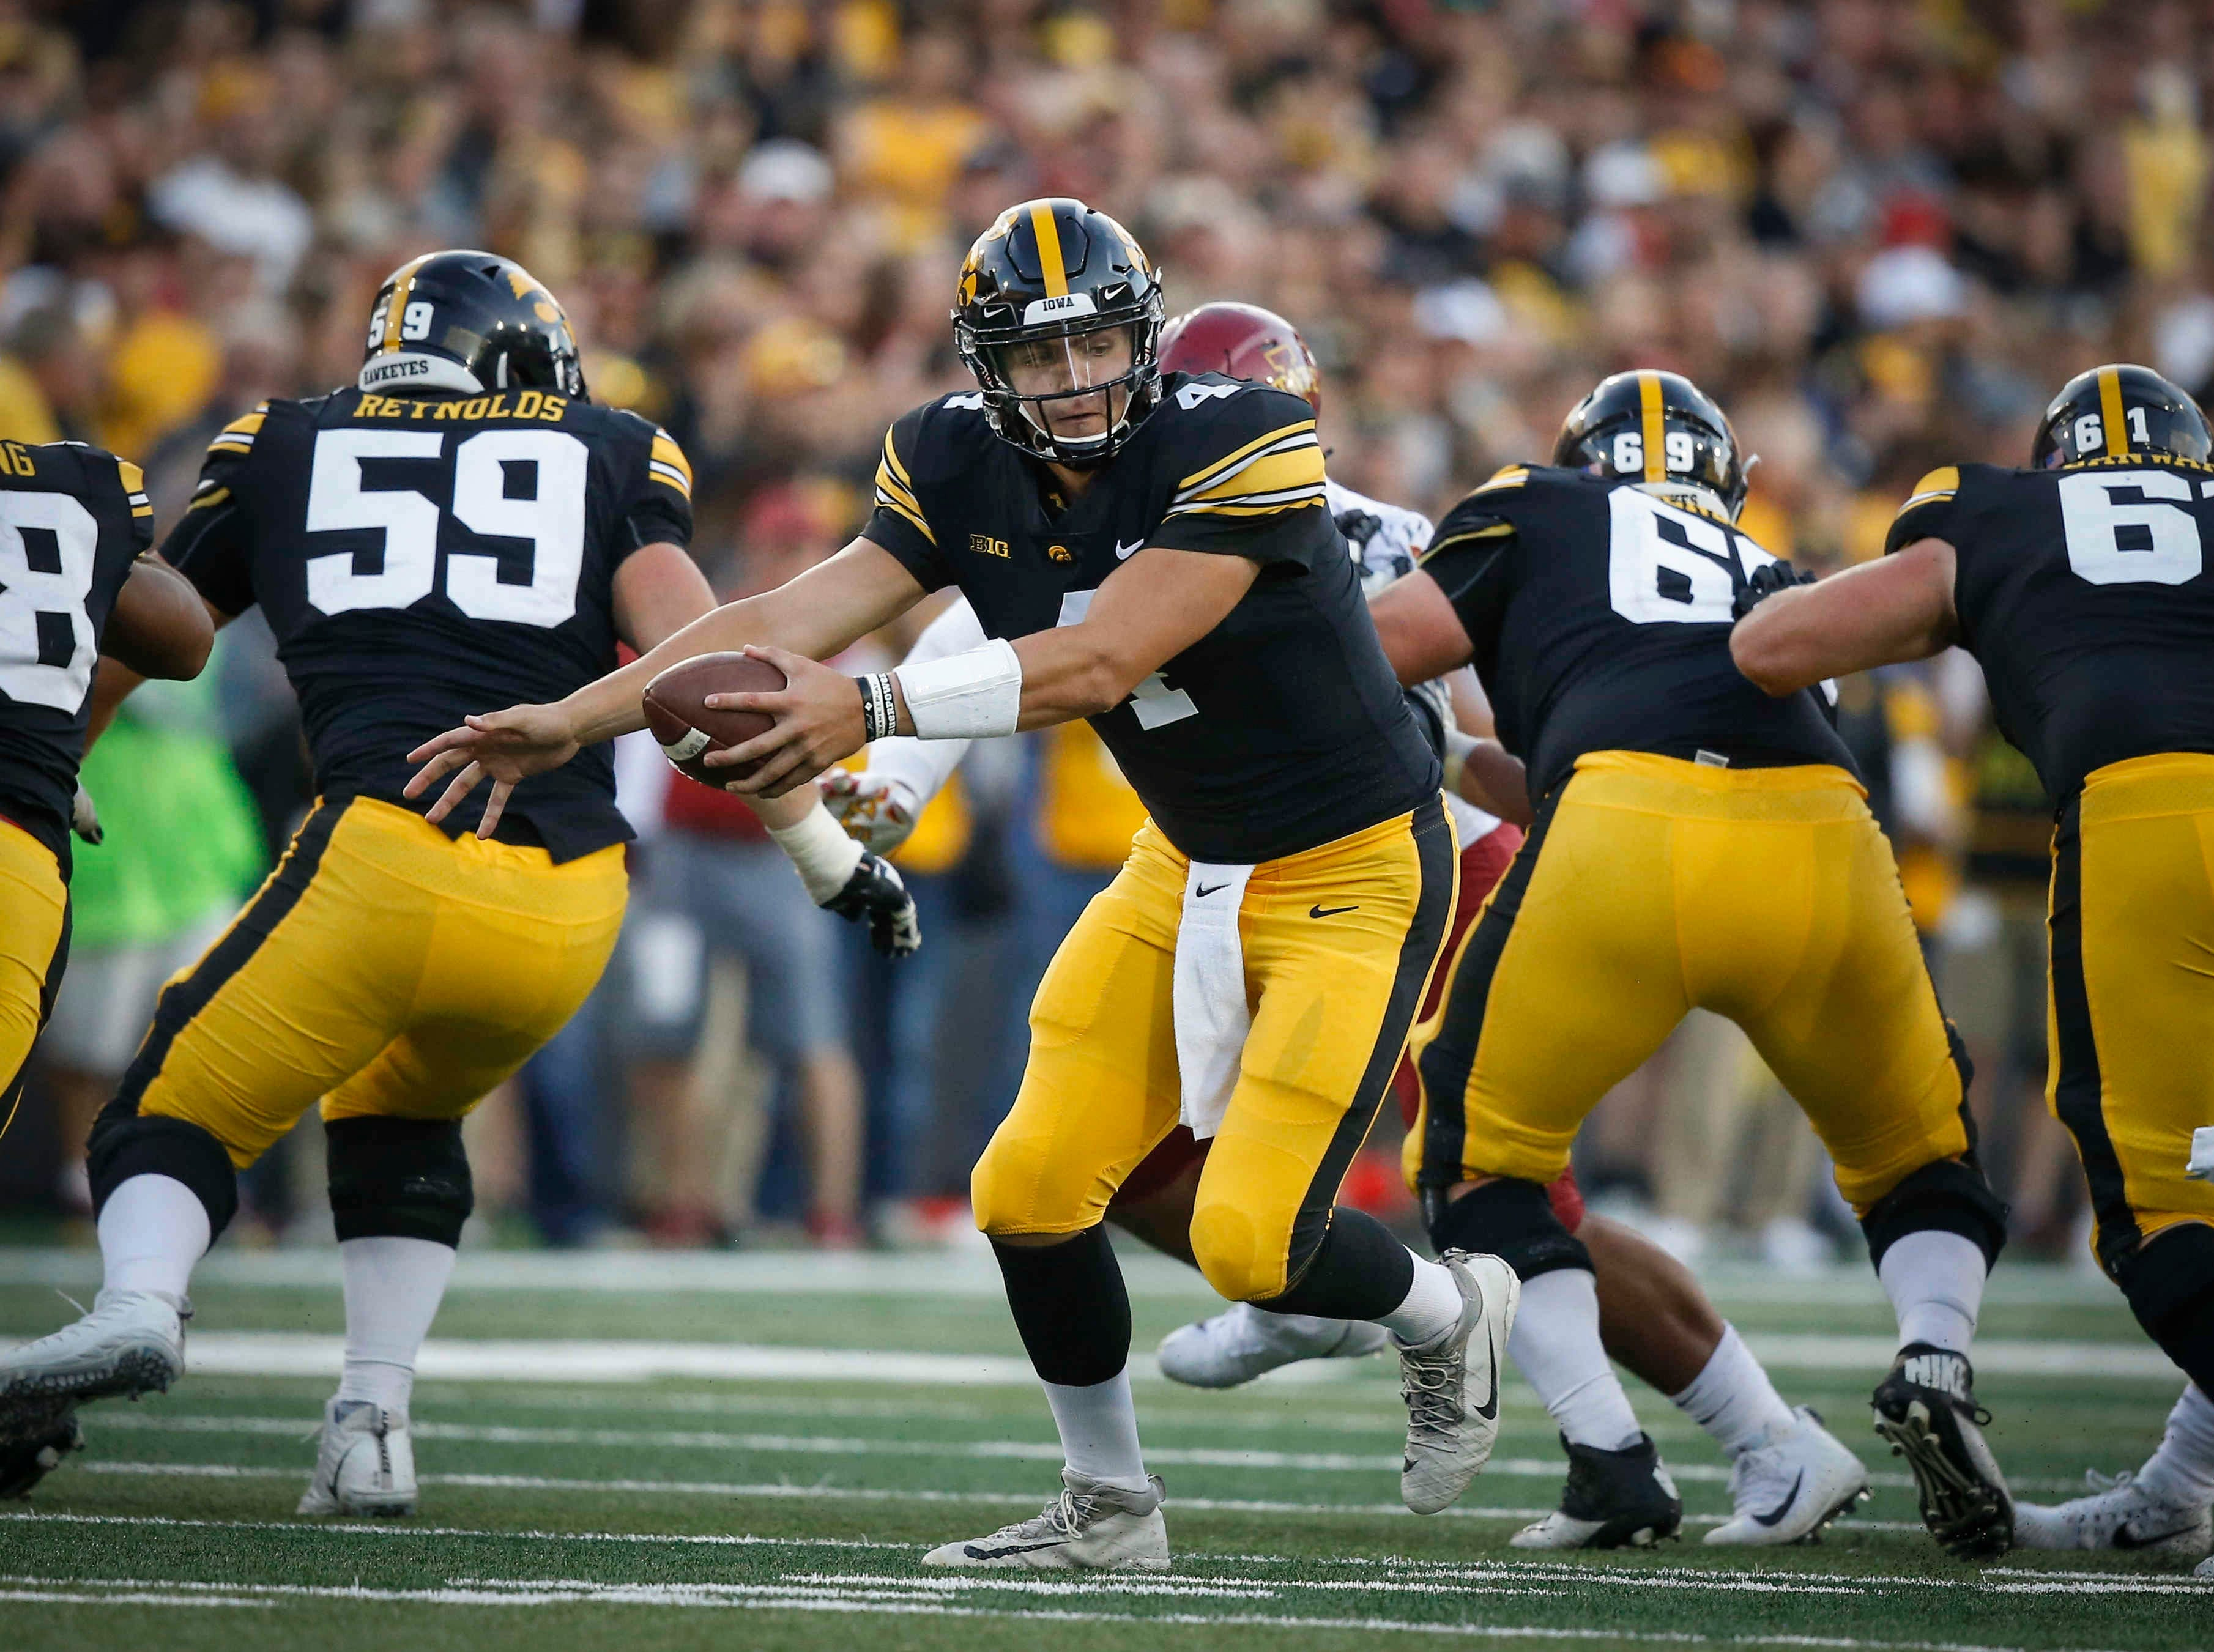 Iowa quarterback Nate Stanley hands the ball out to a running back against Iowa State on Saturday, Sept. 9, 2018, at Kinnick Stadium in Iowa City.